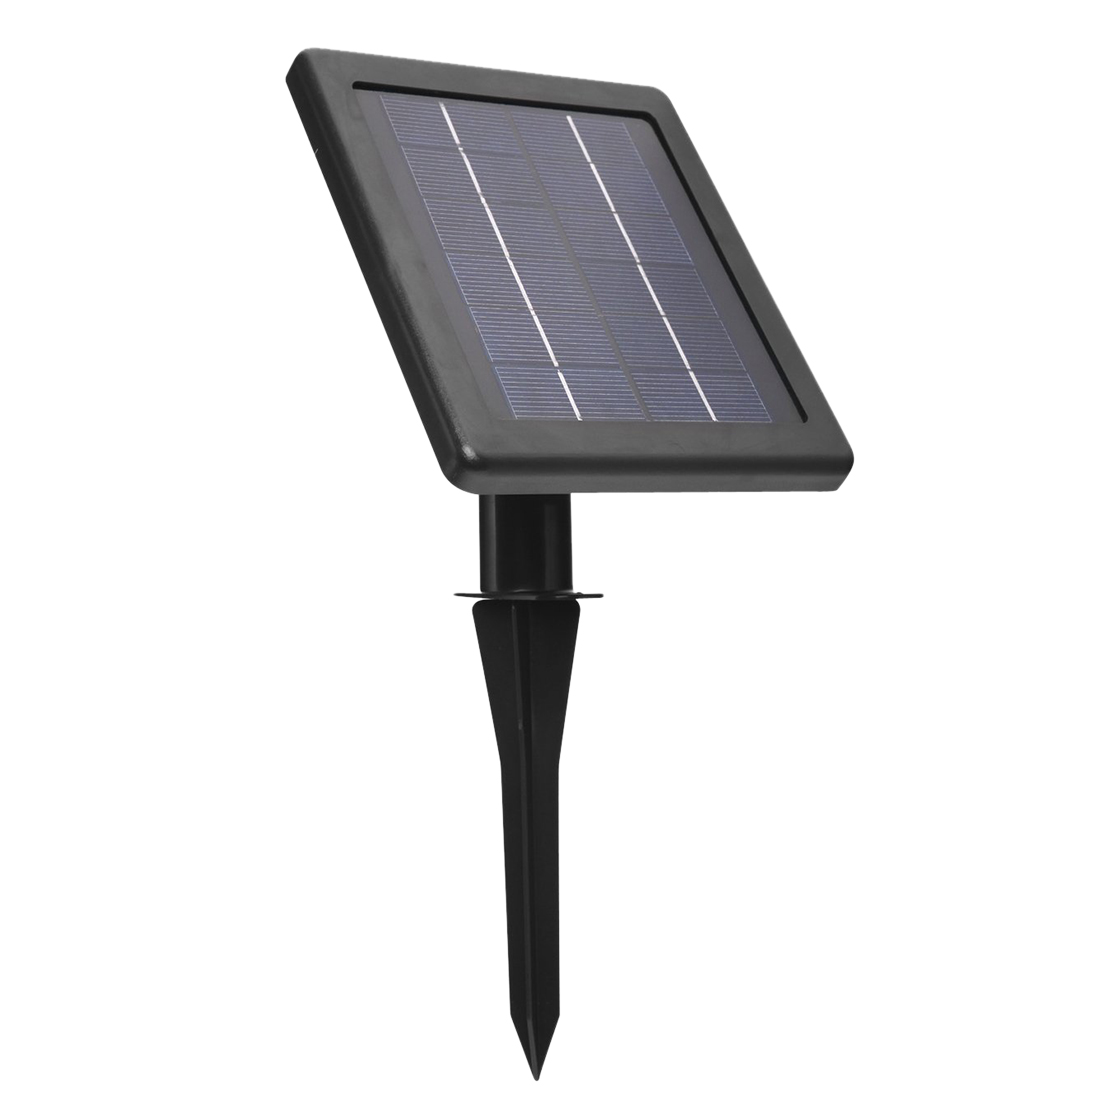 Rechargeable Waterproof Solar Powered 30 LED Spot Light White Lamp with Lithium Battery Inside for Lawn, Garden, Road, Hotel, et new rechargeable lithium battery operated 10w rechargeable emergency light